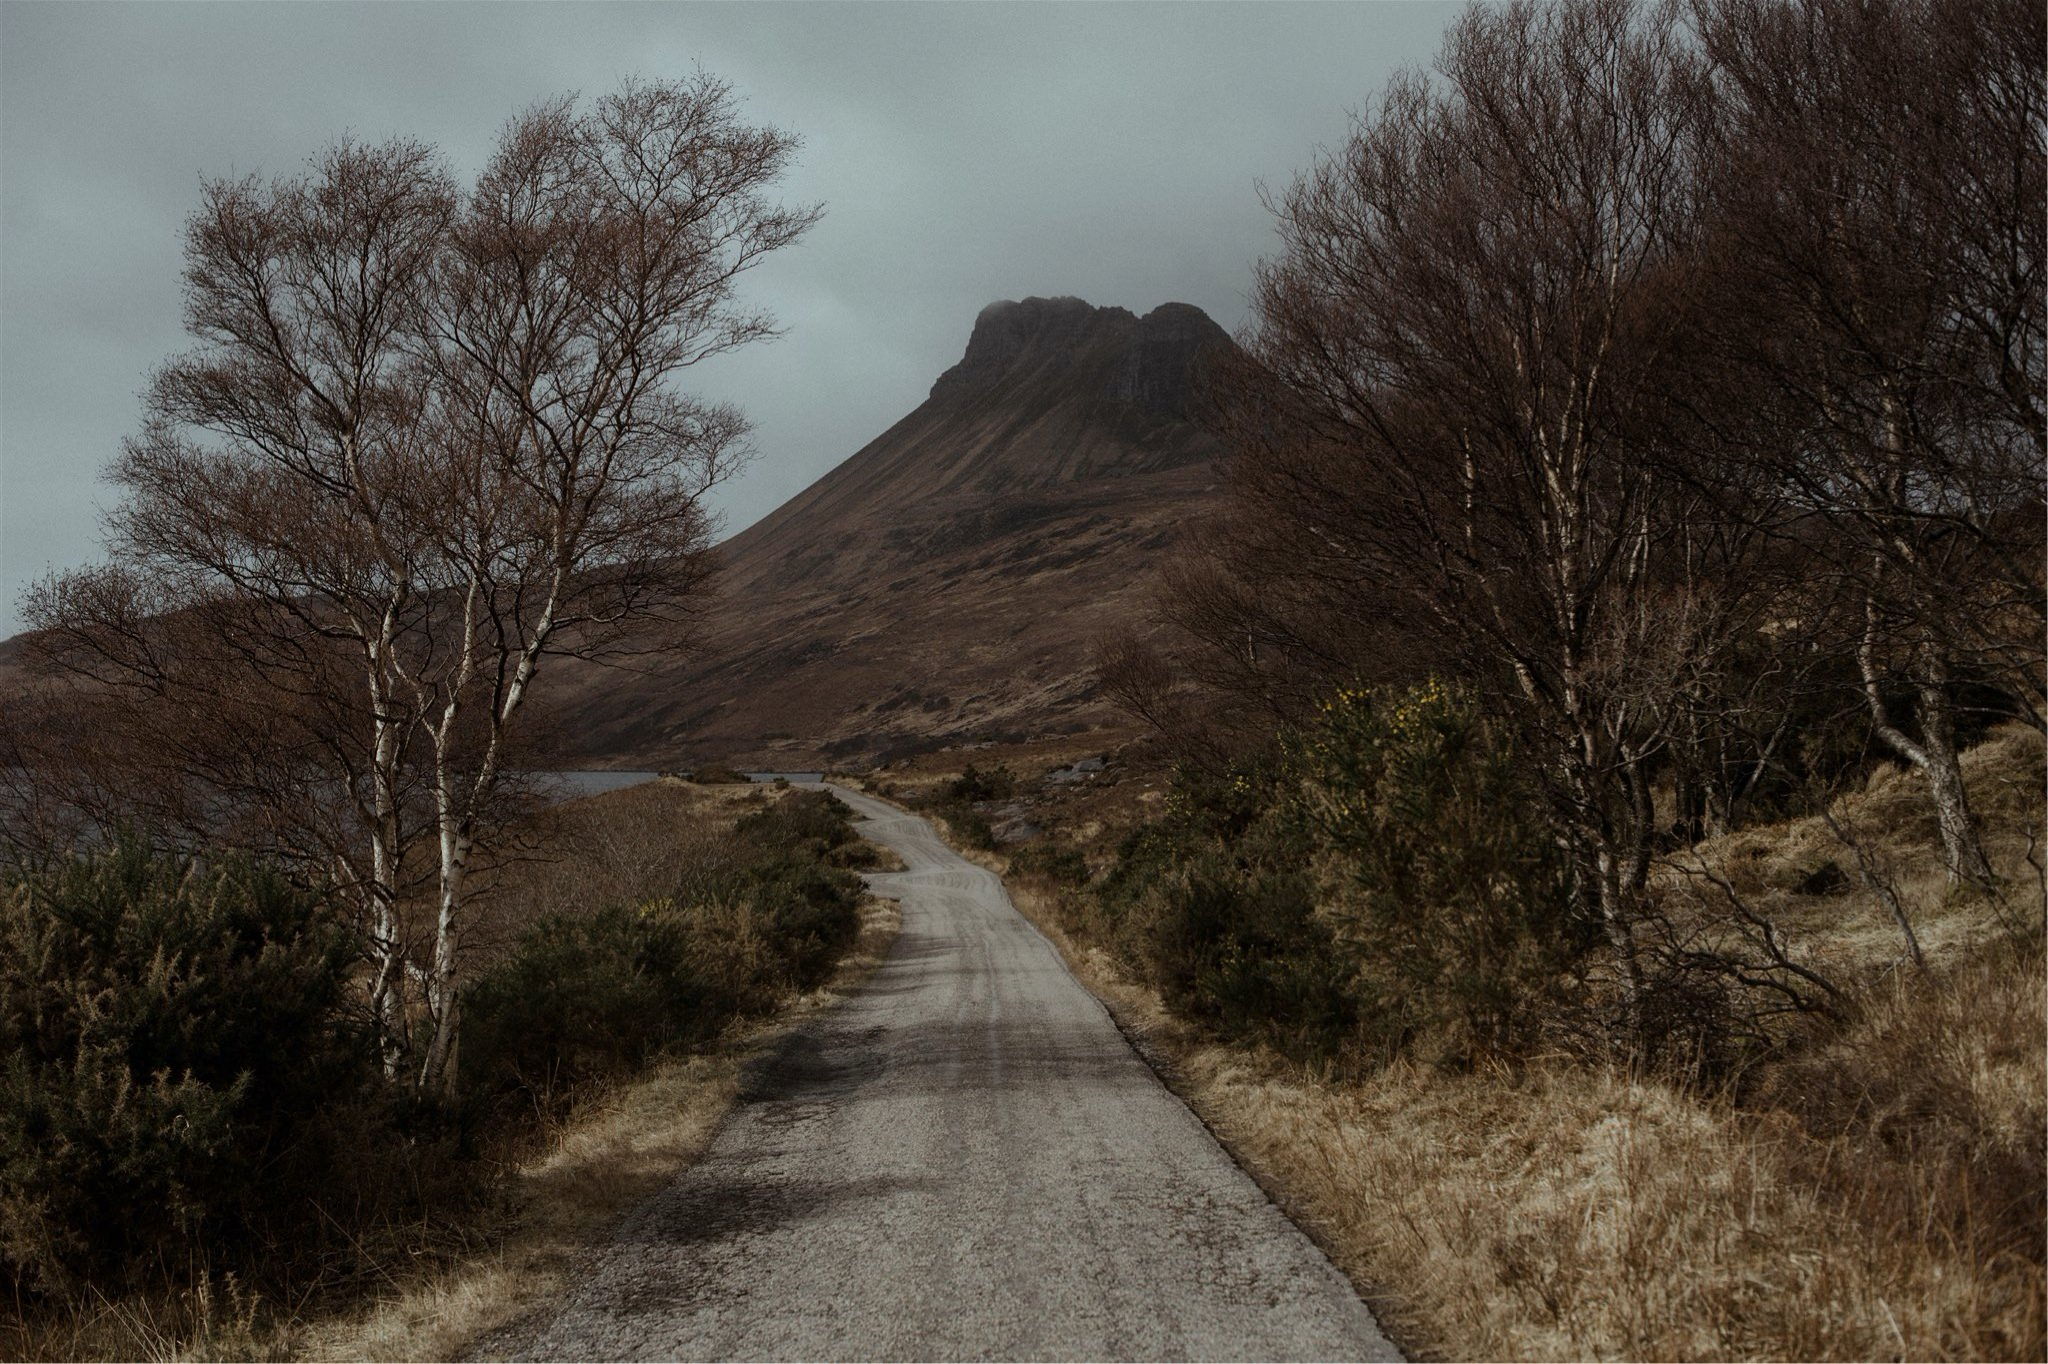 Landscape shot of a road leading towards a mountain in Assynt, Scotland